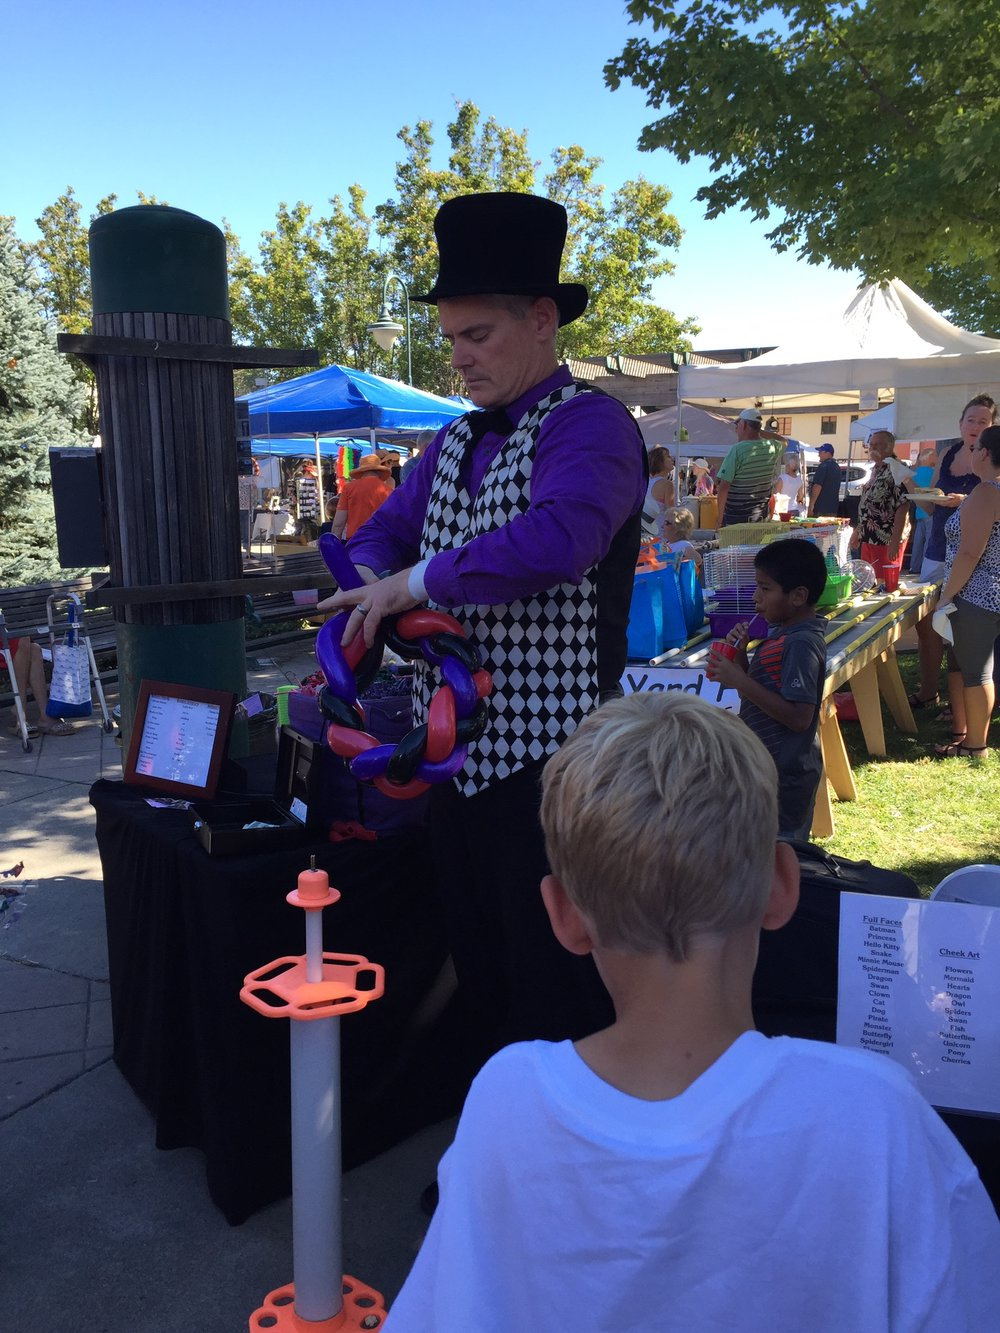 OOOPS the Clown - Don't miss out on one of Ooops the Clown's amazing balloon twisting creations and magic show.